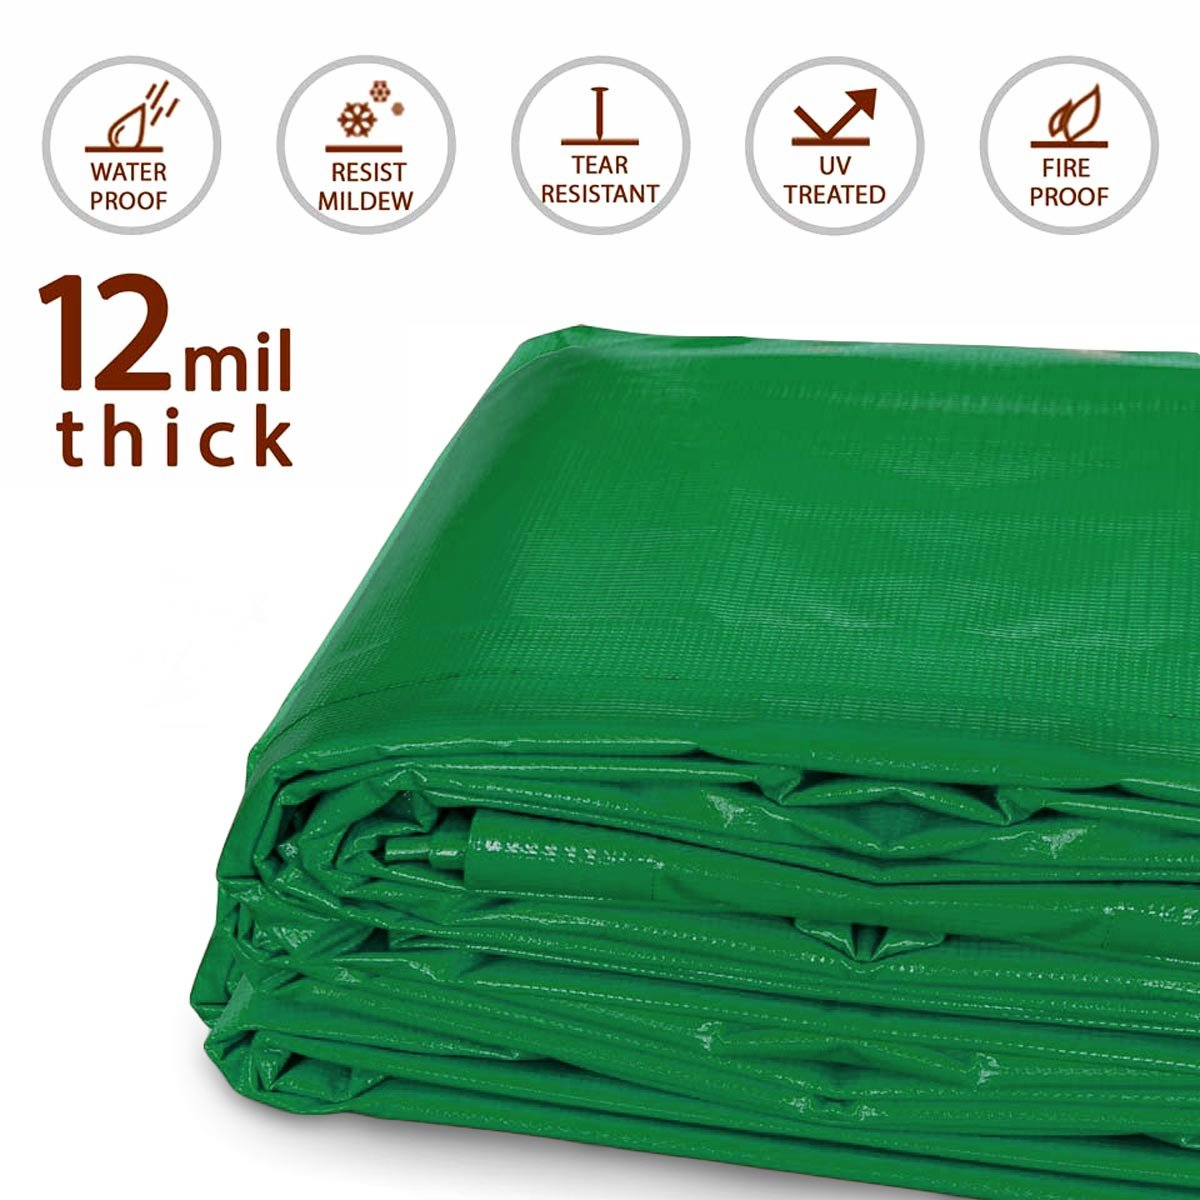 20-Foot by 40-Foot Multi-Purpose 100% Waterproof Red Heavy Duty PVC Vinyl Tarp Cover 12 Mil Thickness for Inflatables, Tents, and Weather Protection